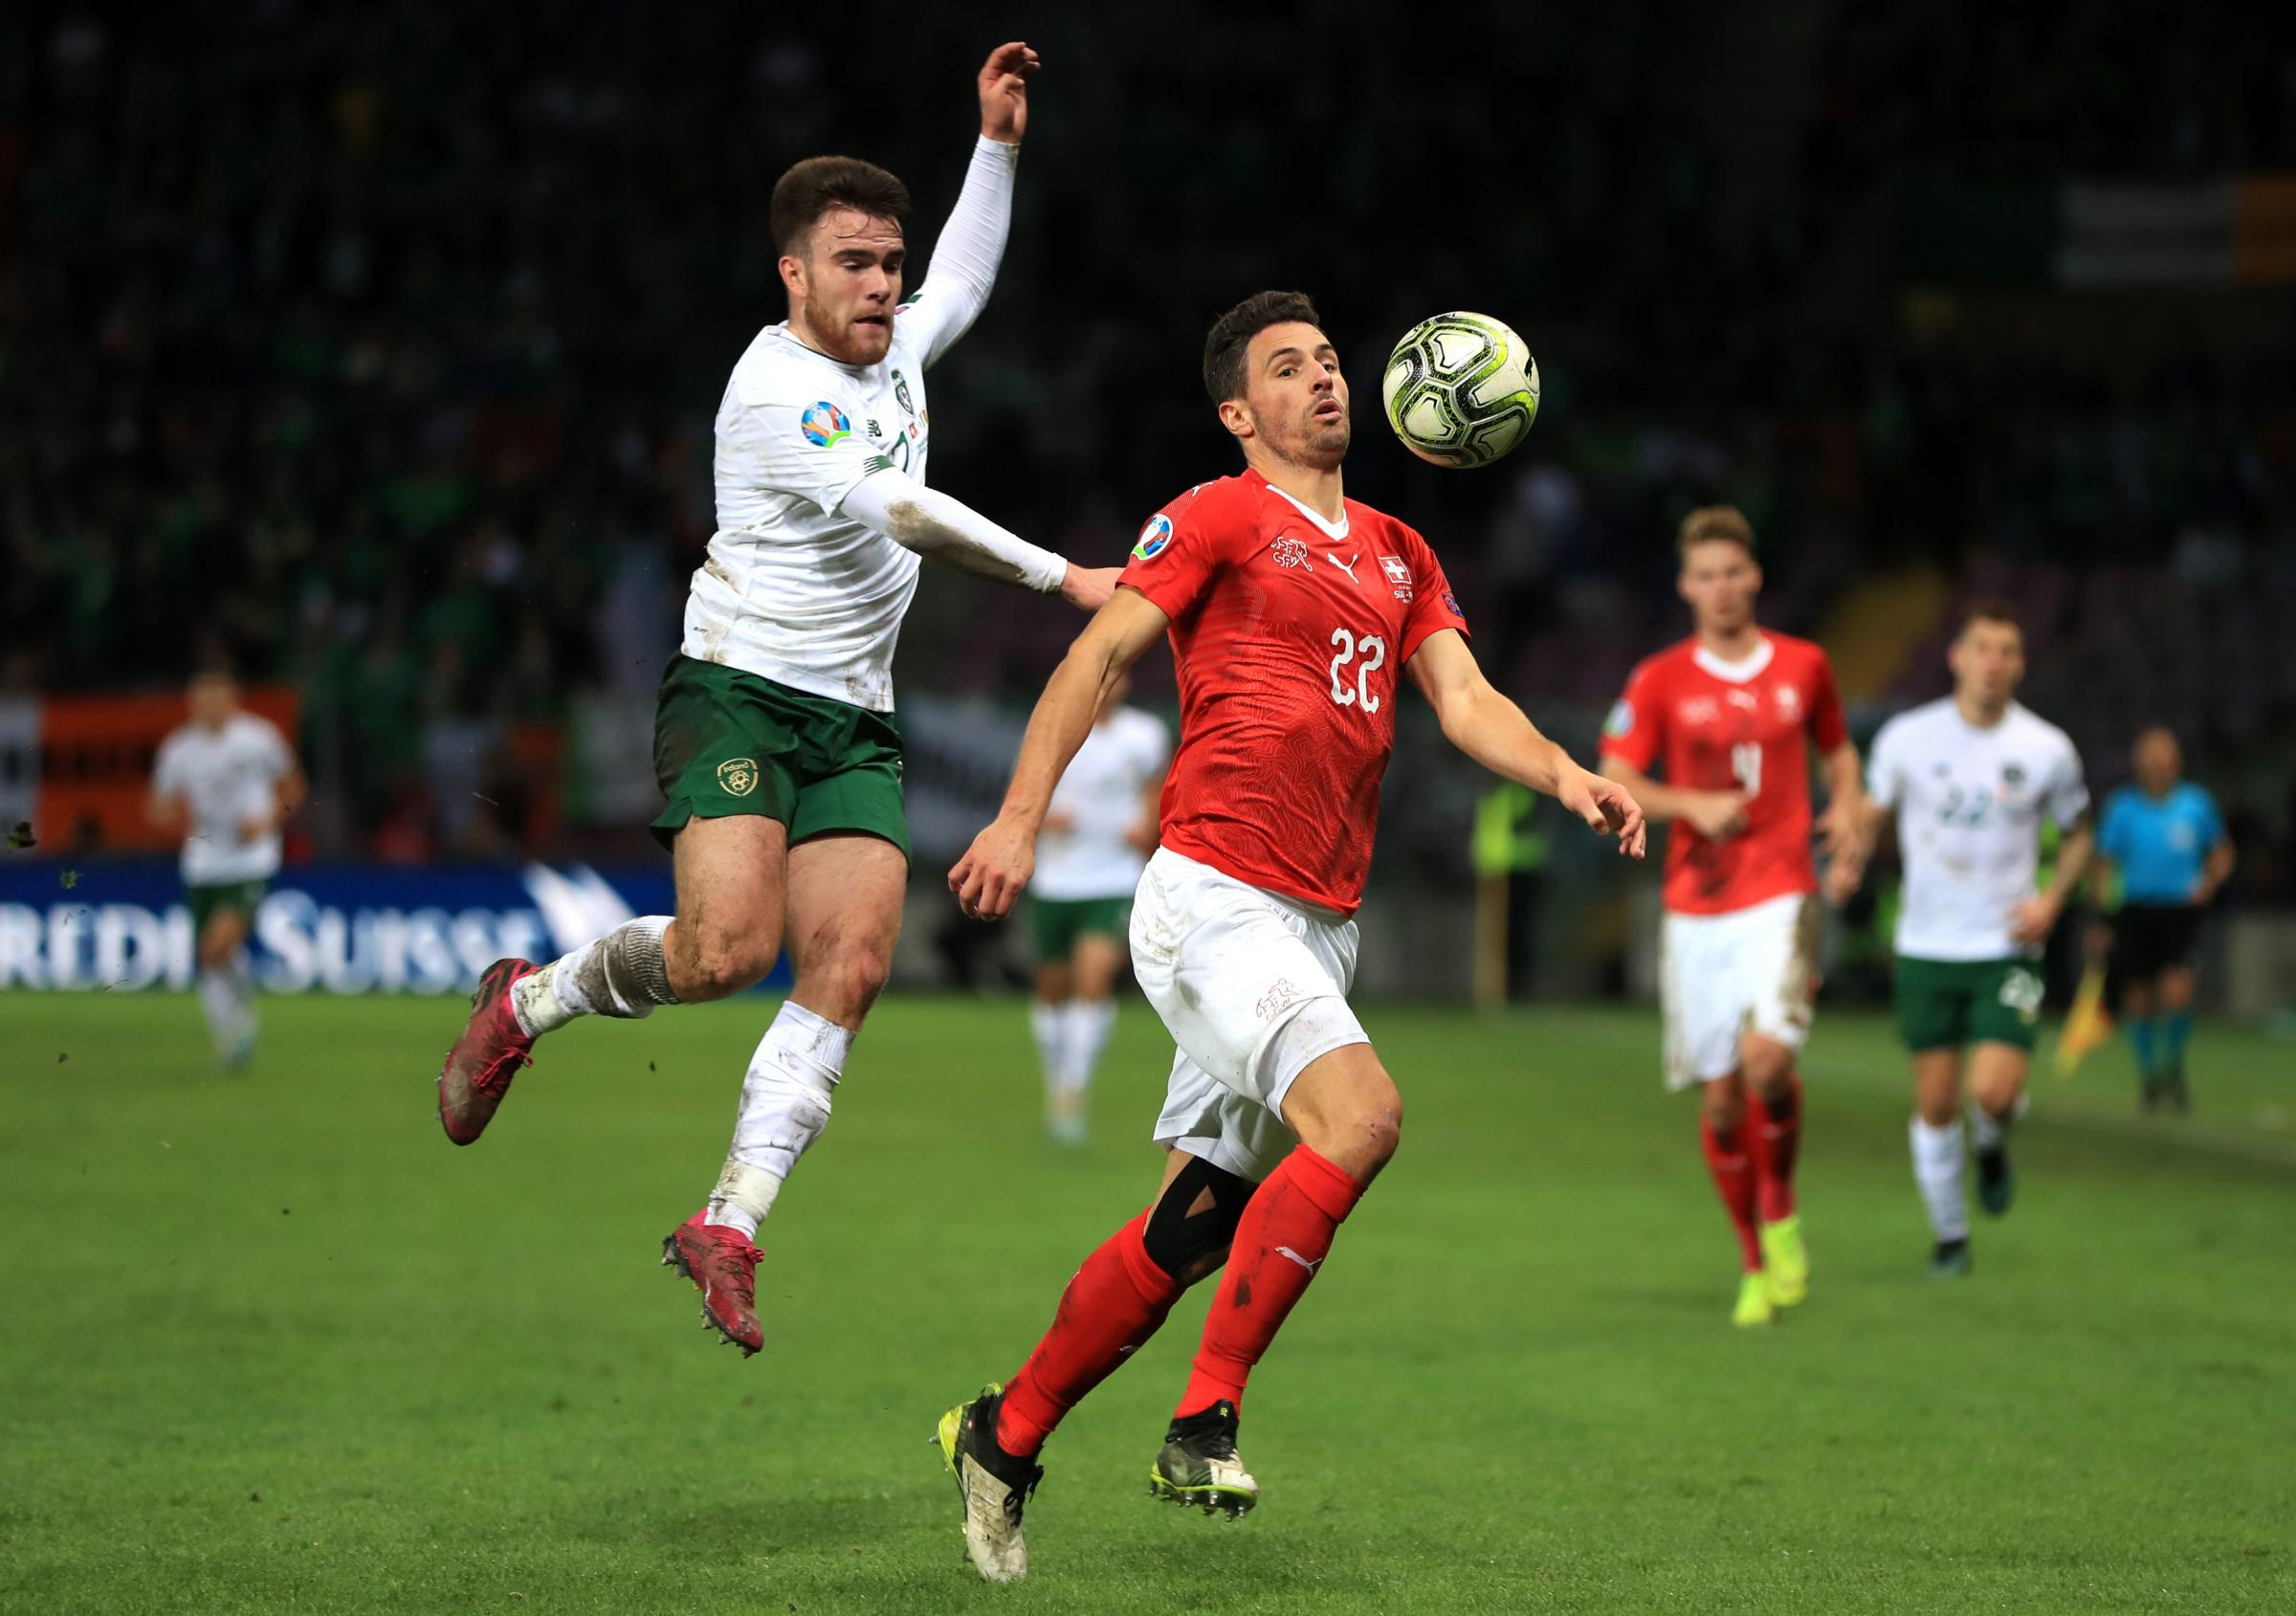 Aaron Connolly and Shane Duffy named in Republic of Ireland's 28-man squad